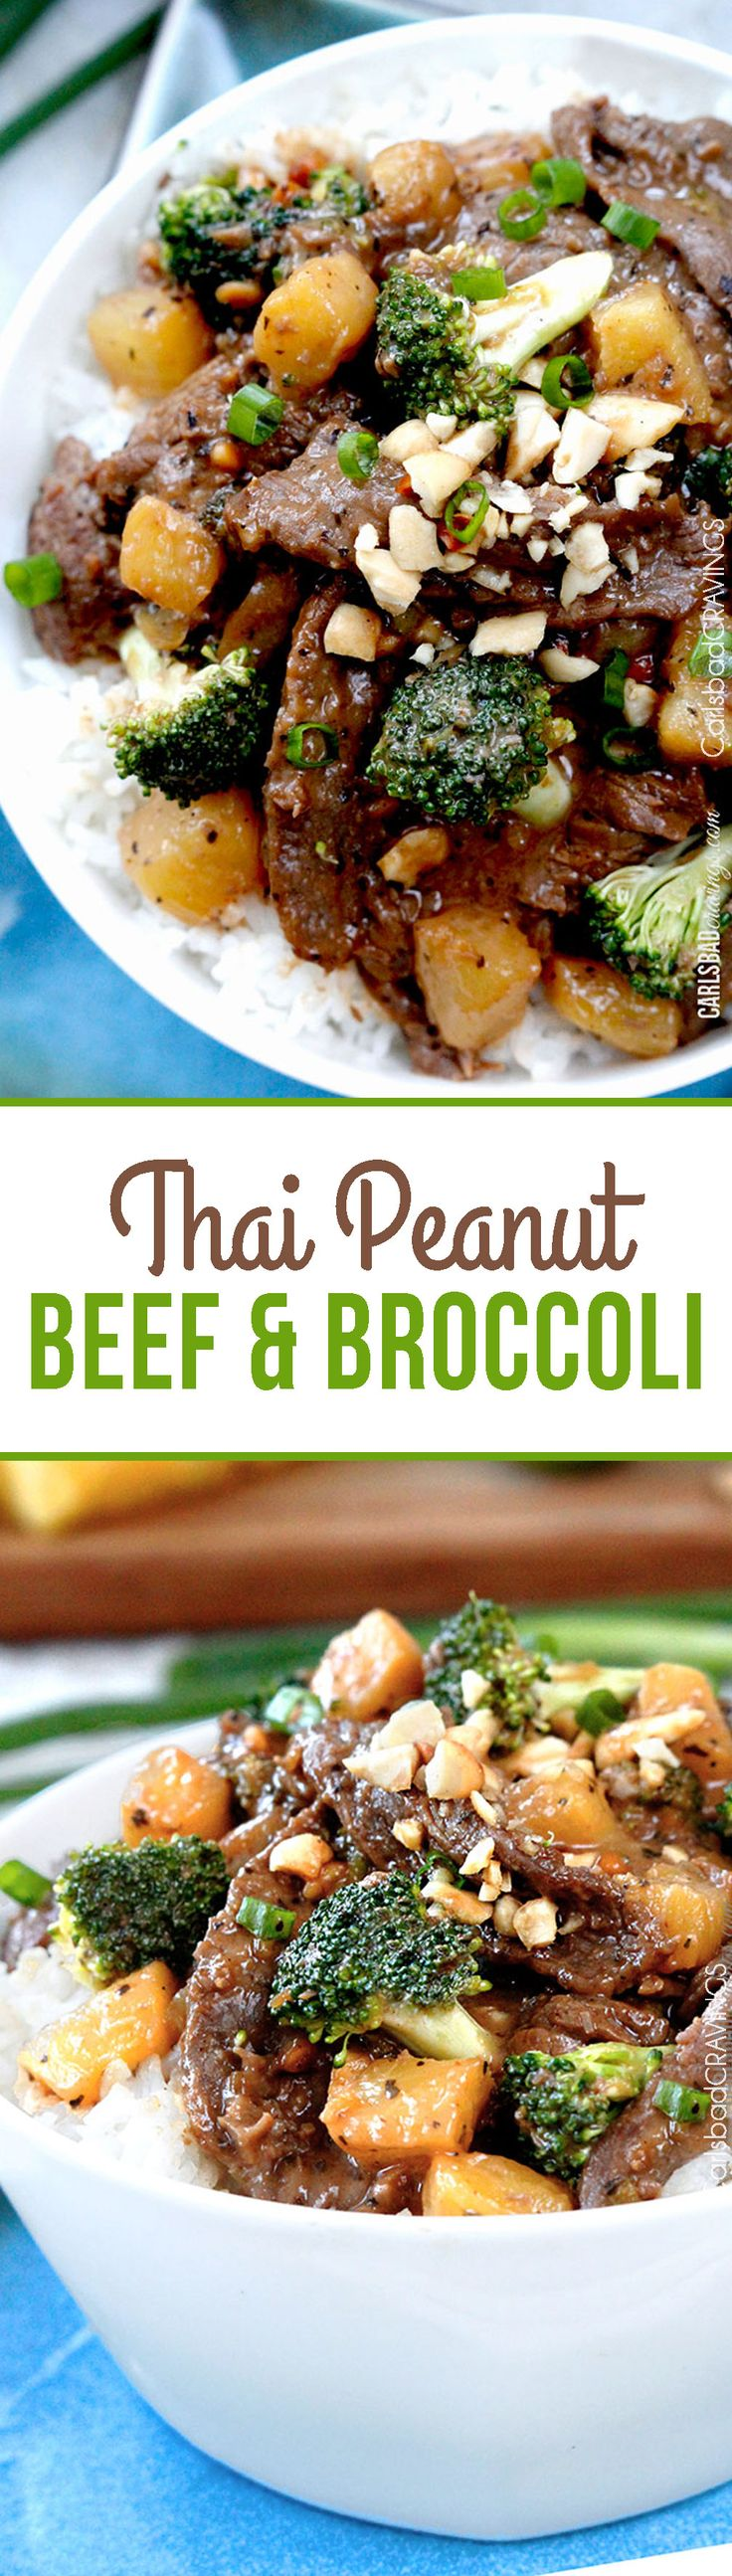 Beef and Broccoli and Thai Peanut Sauce